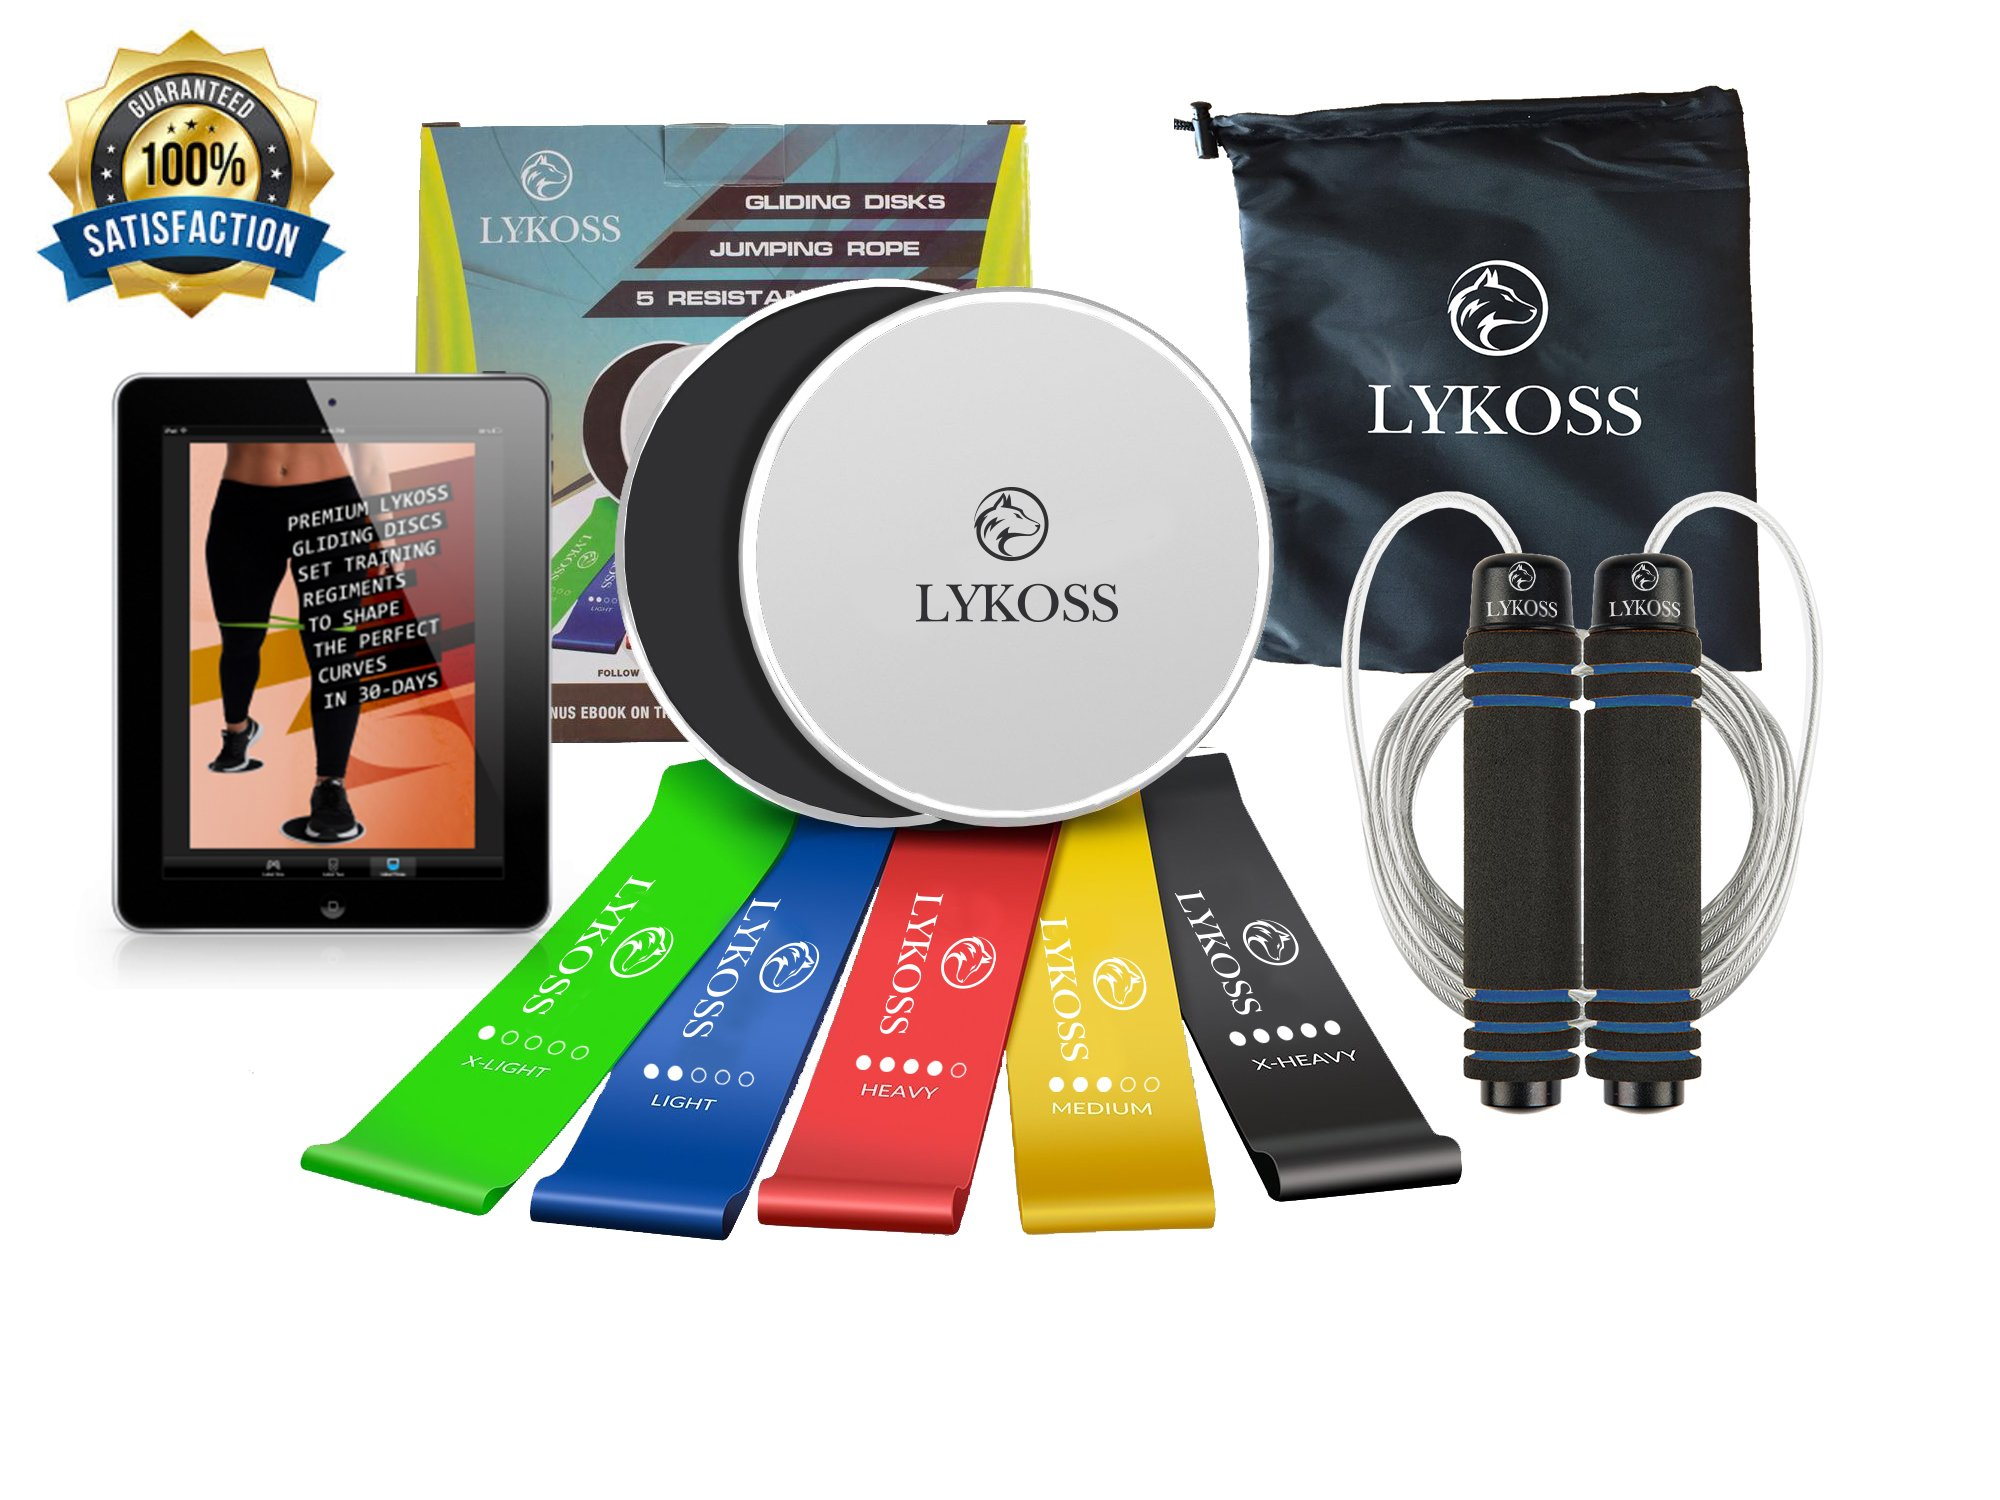 Lykoss 10-IN-ONE 2 Exercise Sliders + 5 Resistance Band Loops + Tangle Free Jump Rope | Gliding Fitness Discs For ANY Surface BONUS eBook System For Building Core Muscles And Dieting To Lose Fat! by Lykoss